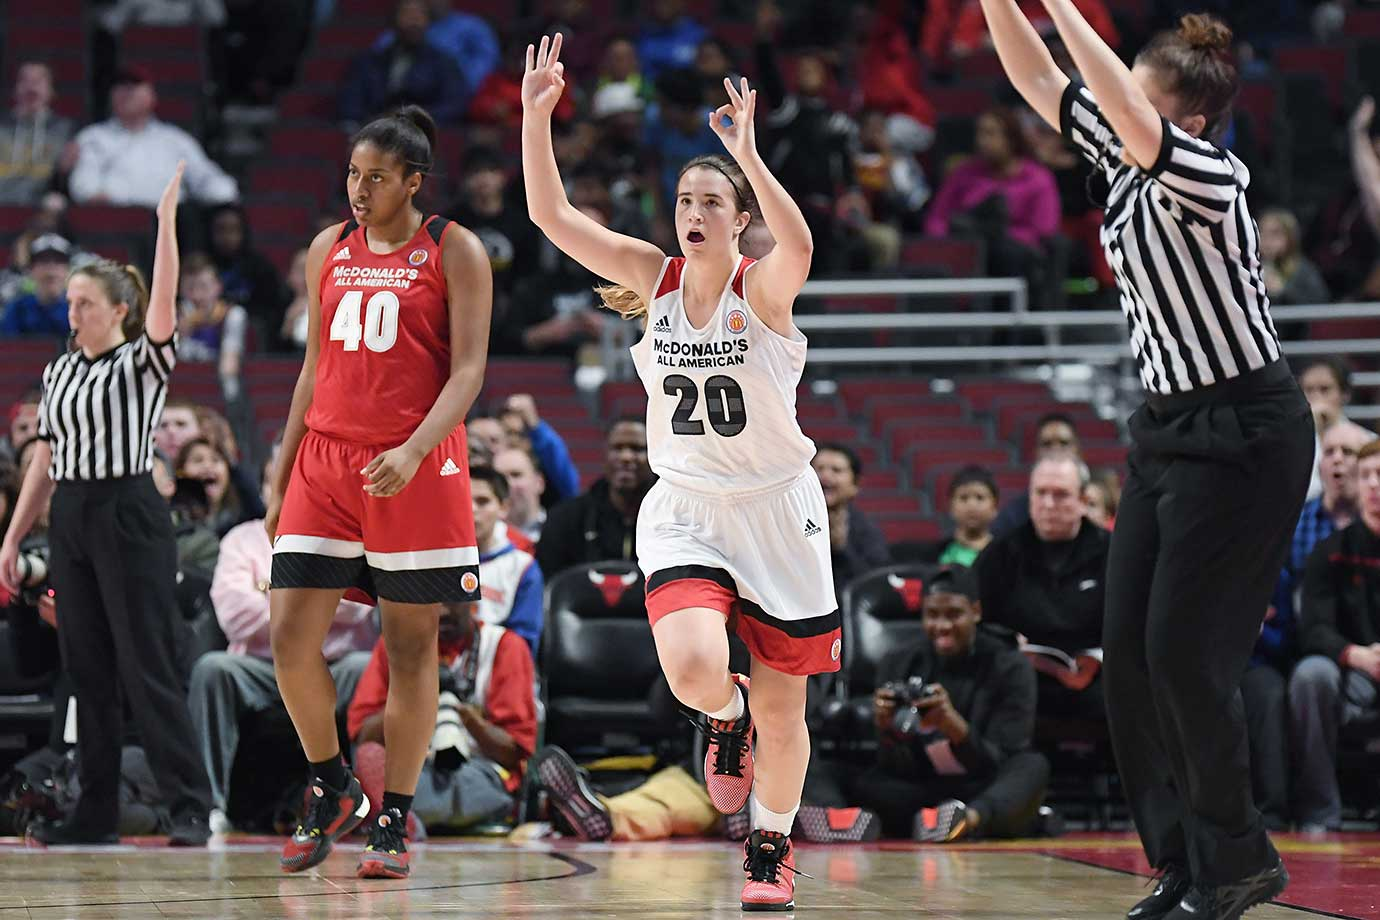 McDonald's All America MVP Sabrina Ionescu celebrates after scoring a three-point basket in overtime.